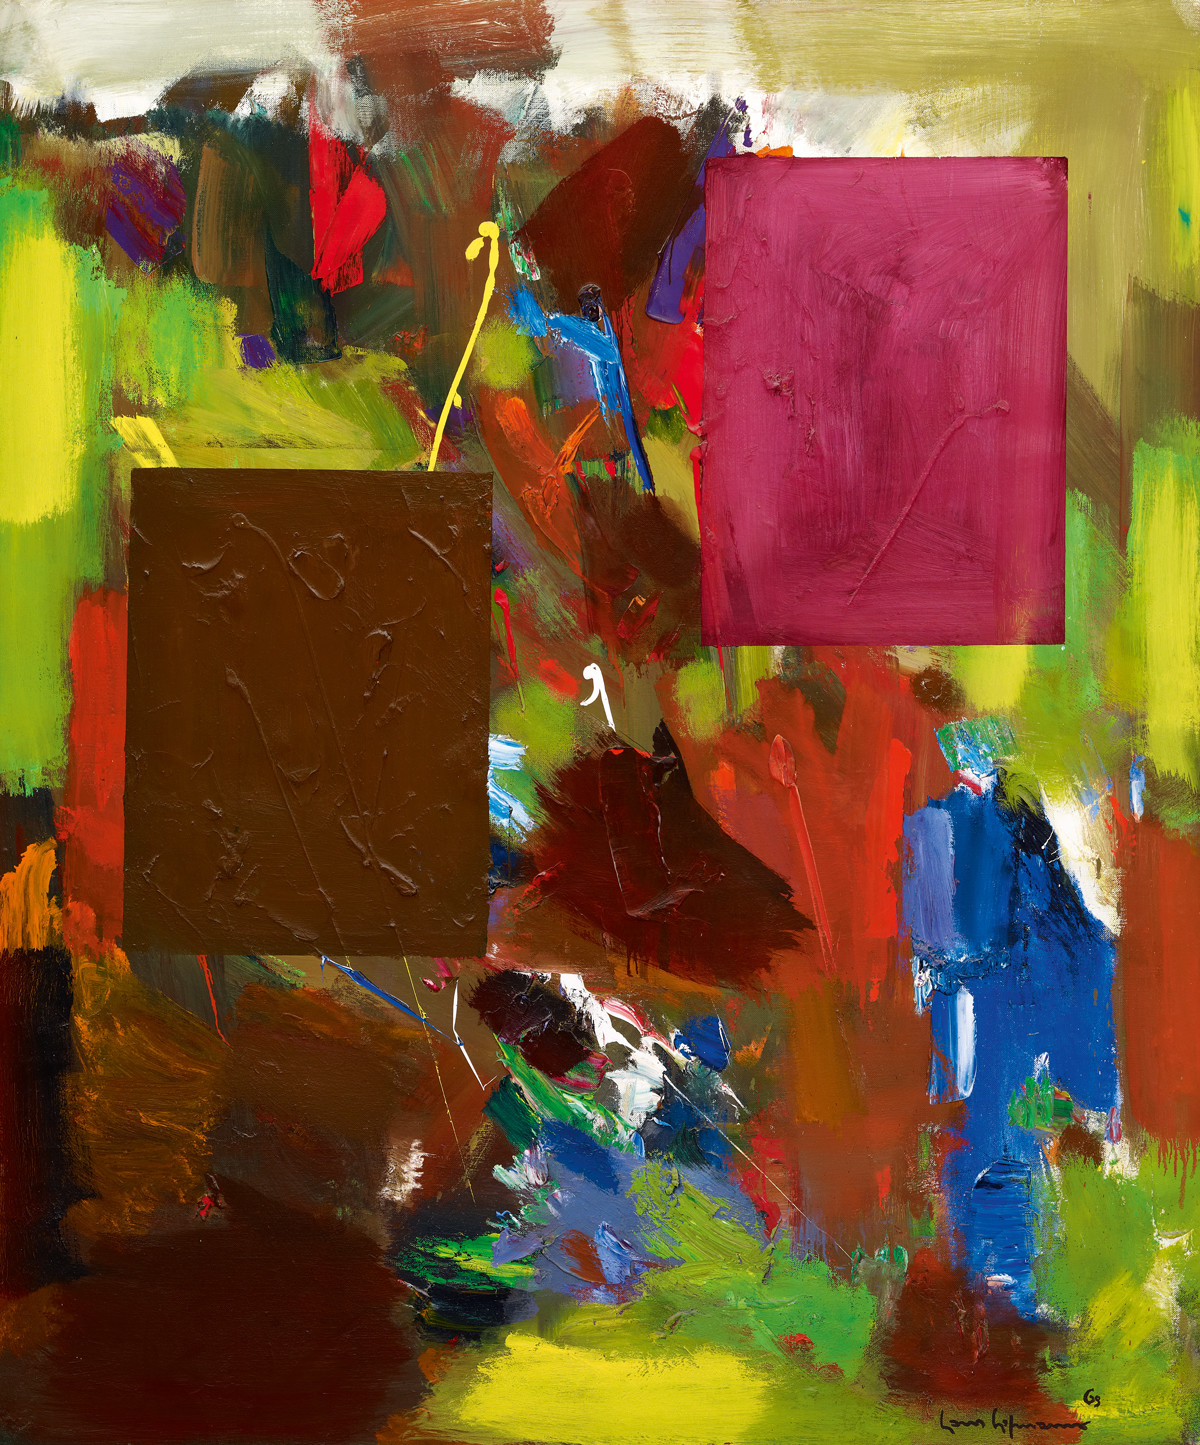 Hans Hofmann, In Sober Ecstasy, 1965 (Private collection/© ARS, NY and DACS, London 2016)